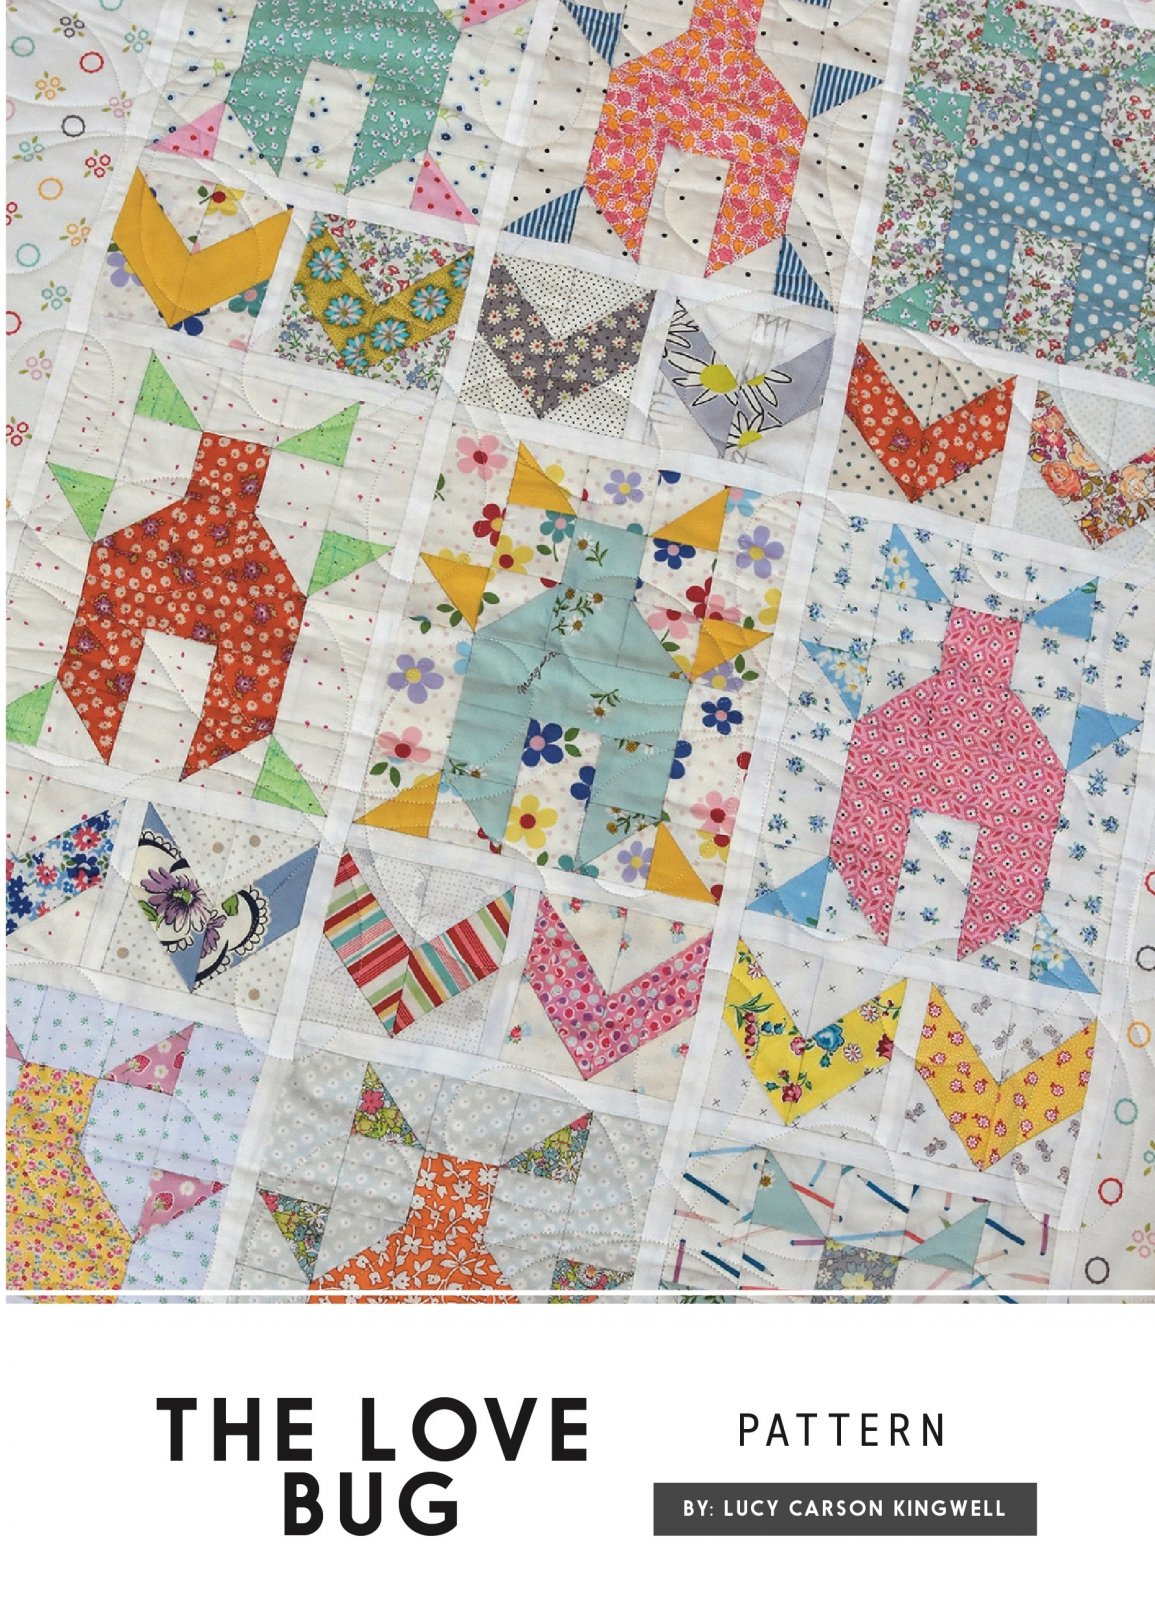 The Love Bug Pattern by Lucy Carson Kingwell